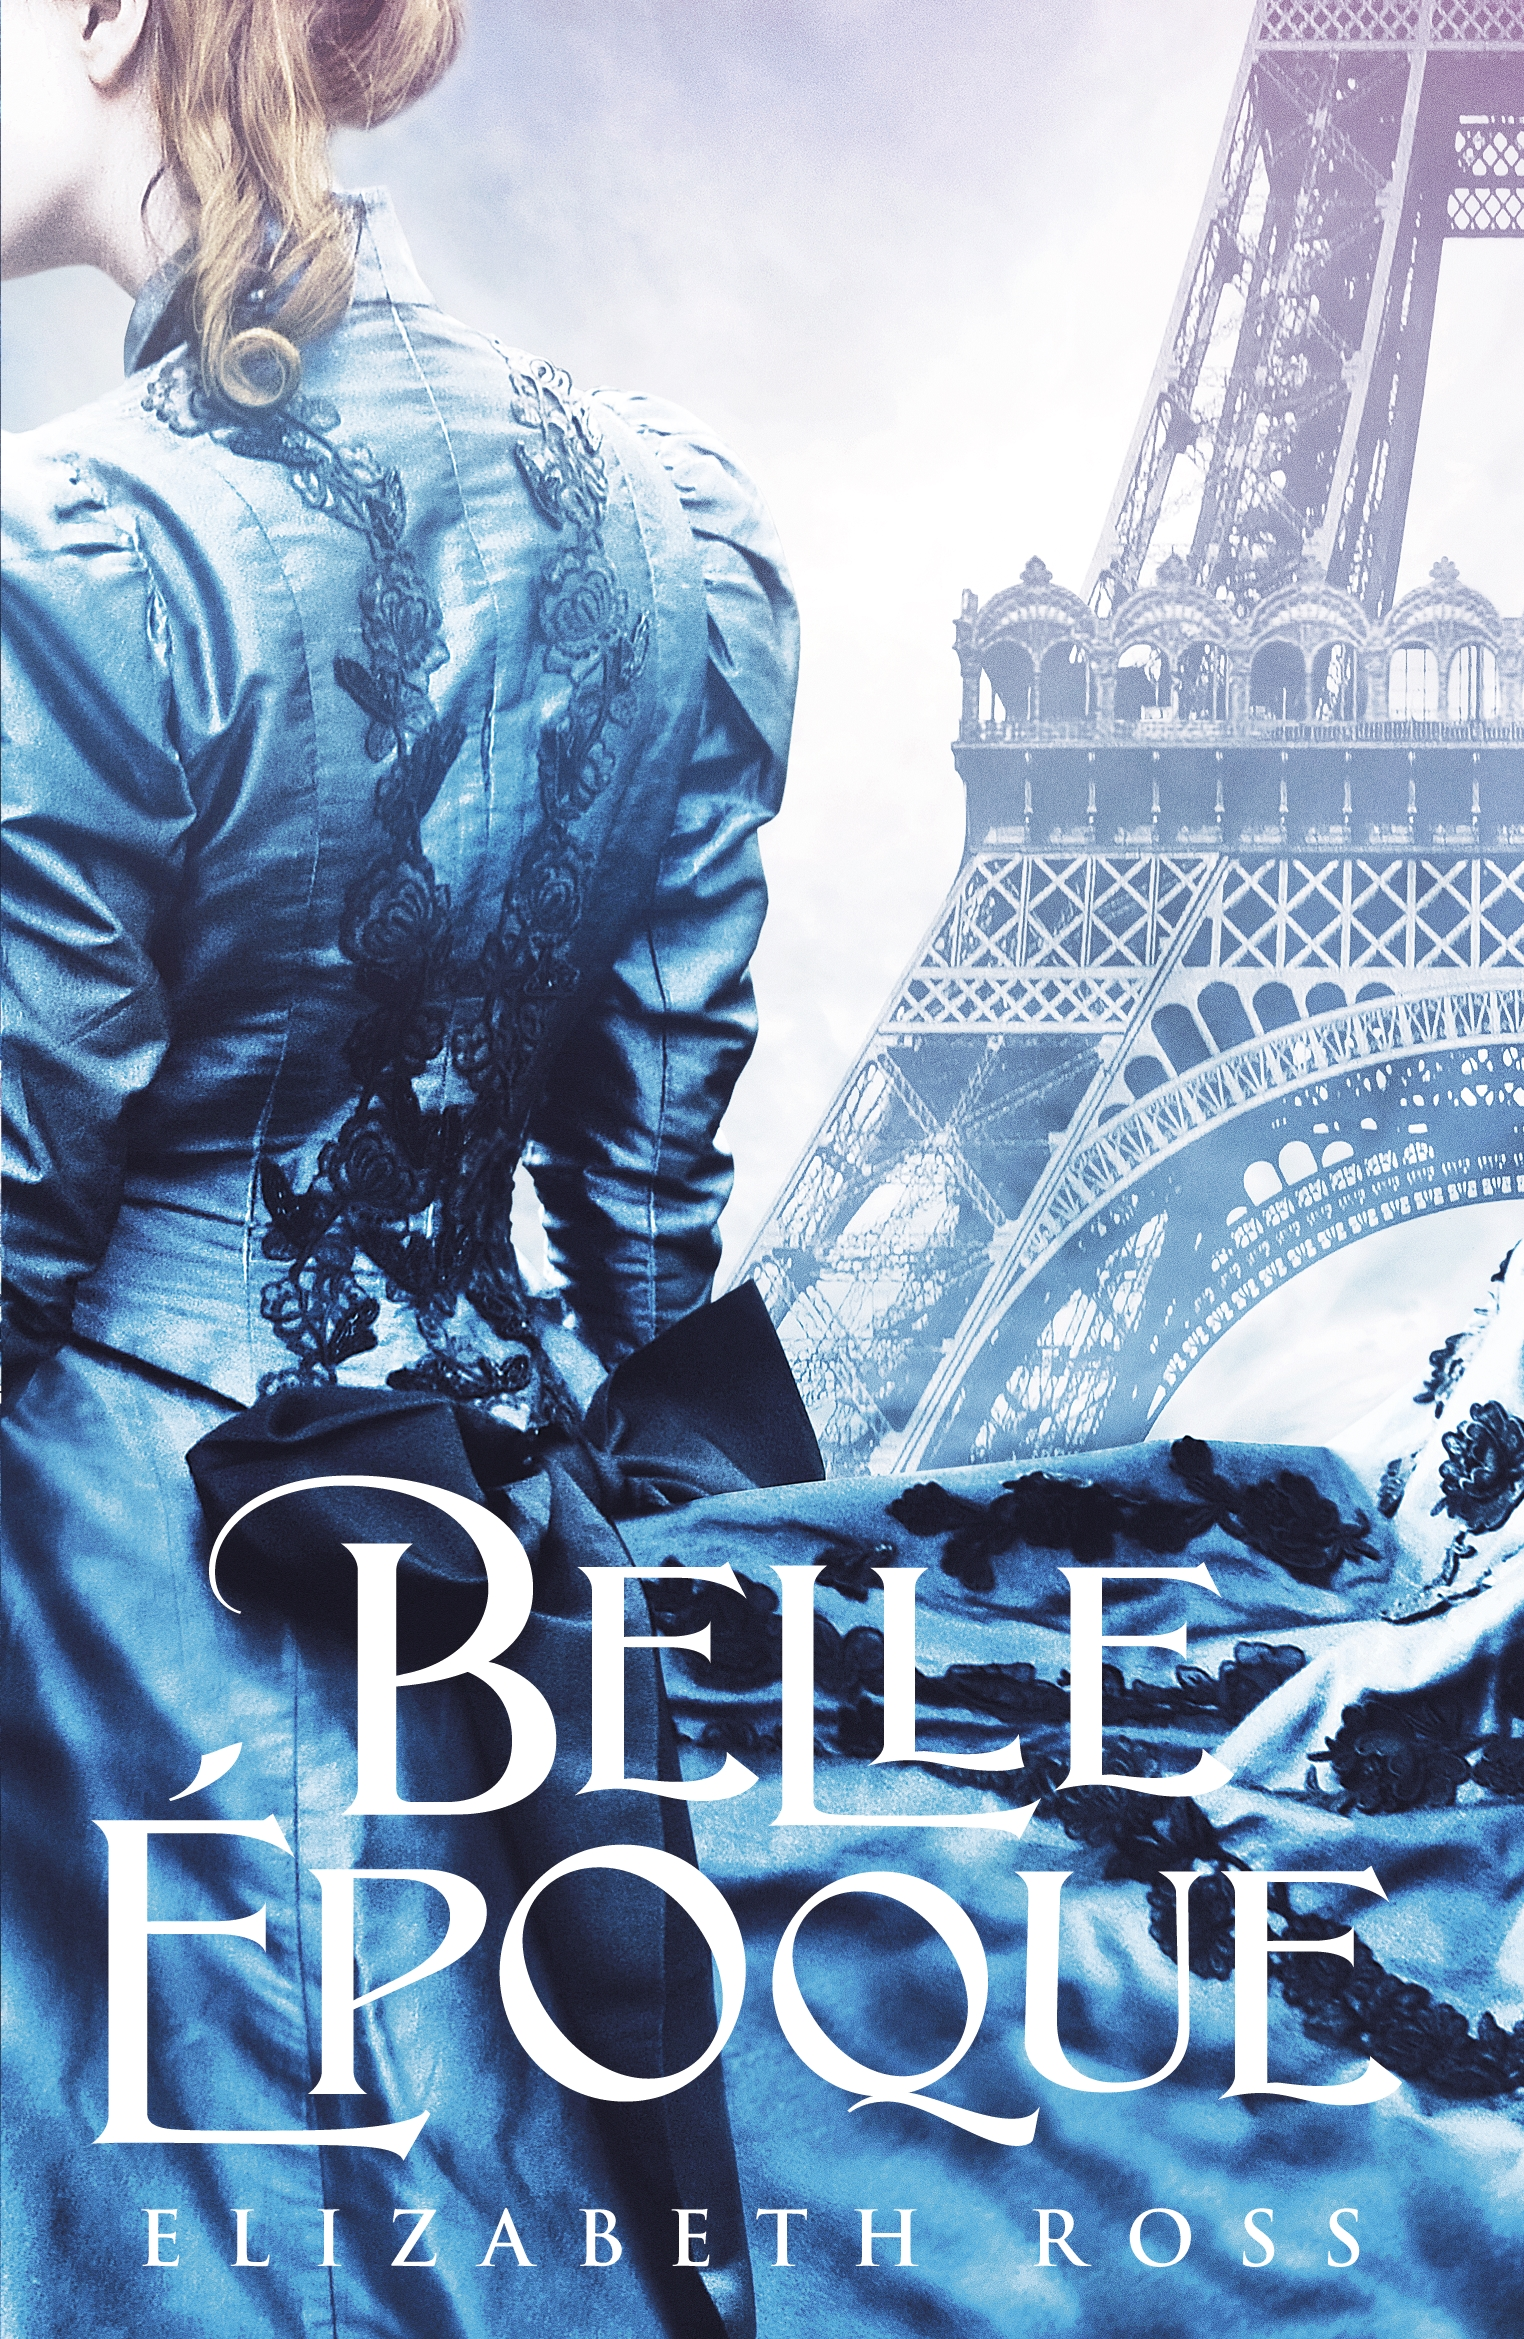 Belle Époque by Elizabeth Ross